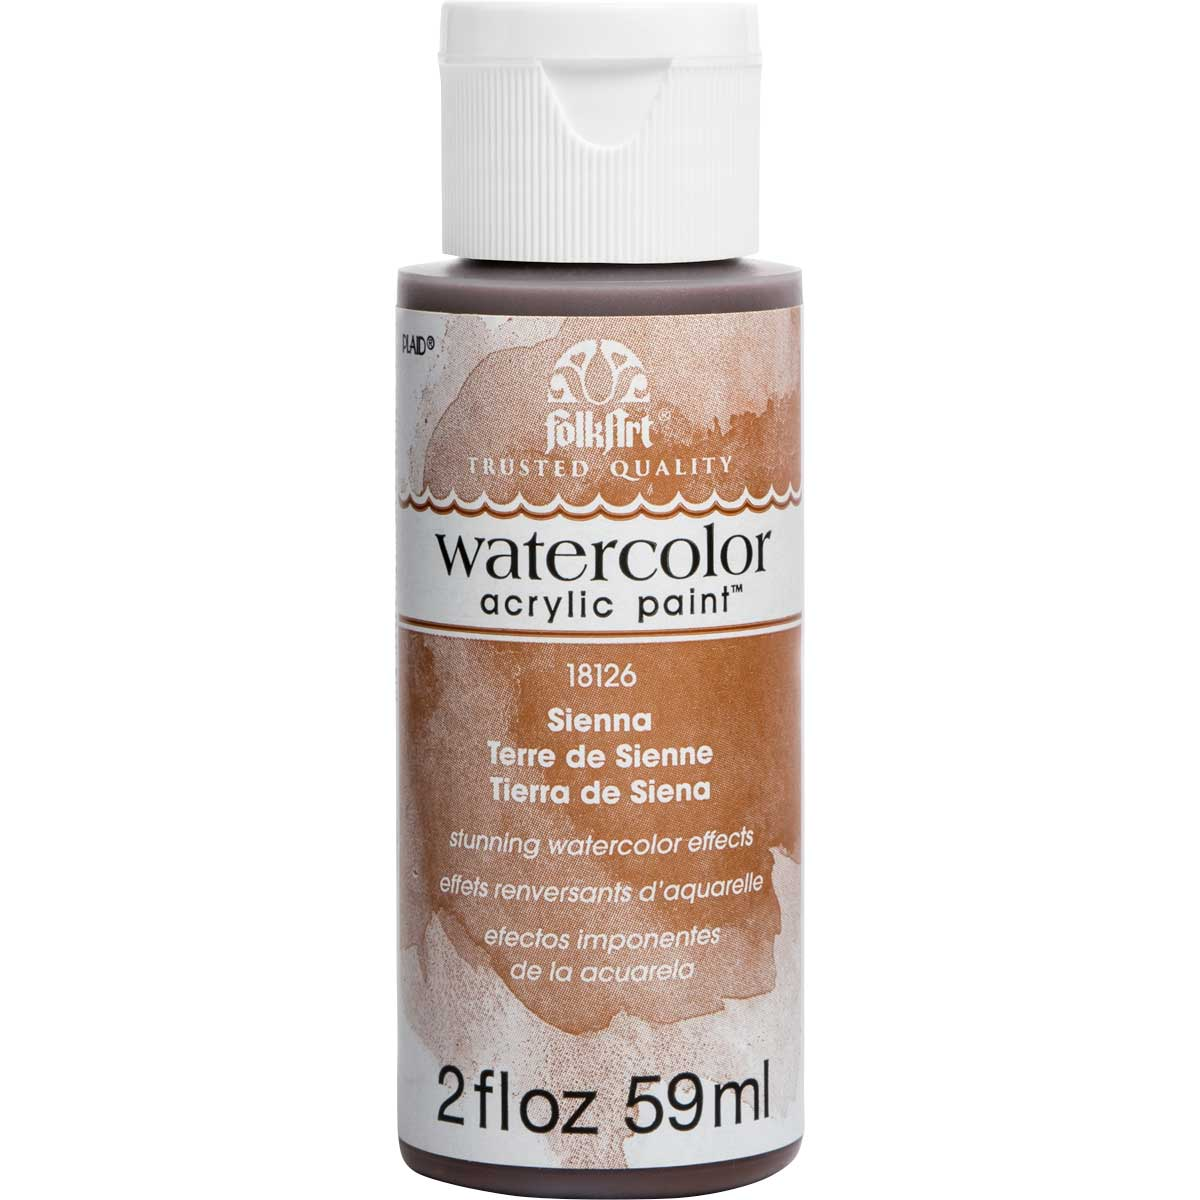 FolkArt ® Watercolor Acrylic Paint™ - Sienna, 2 oz.